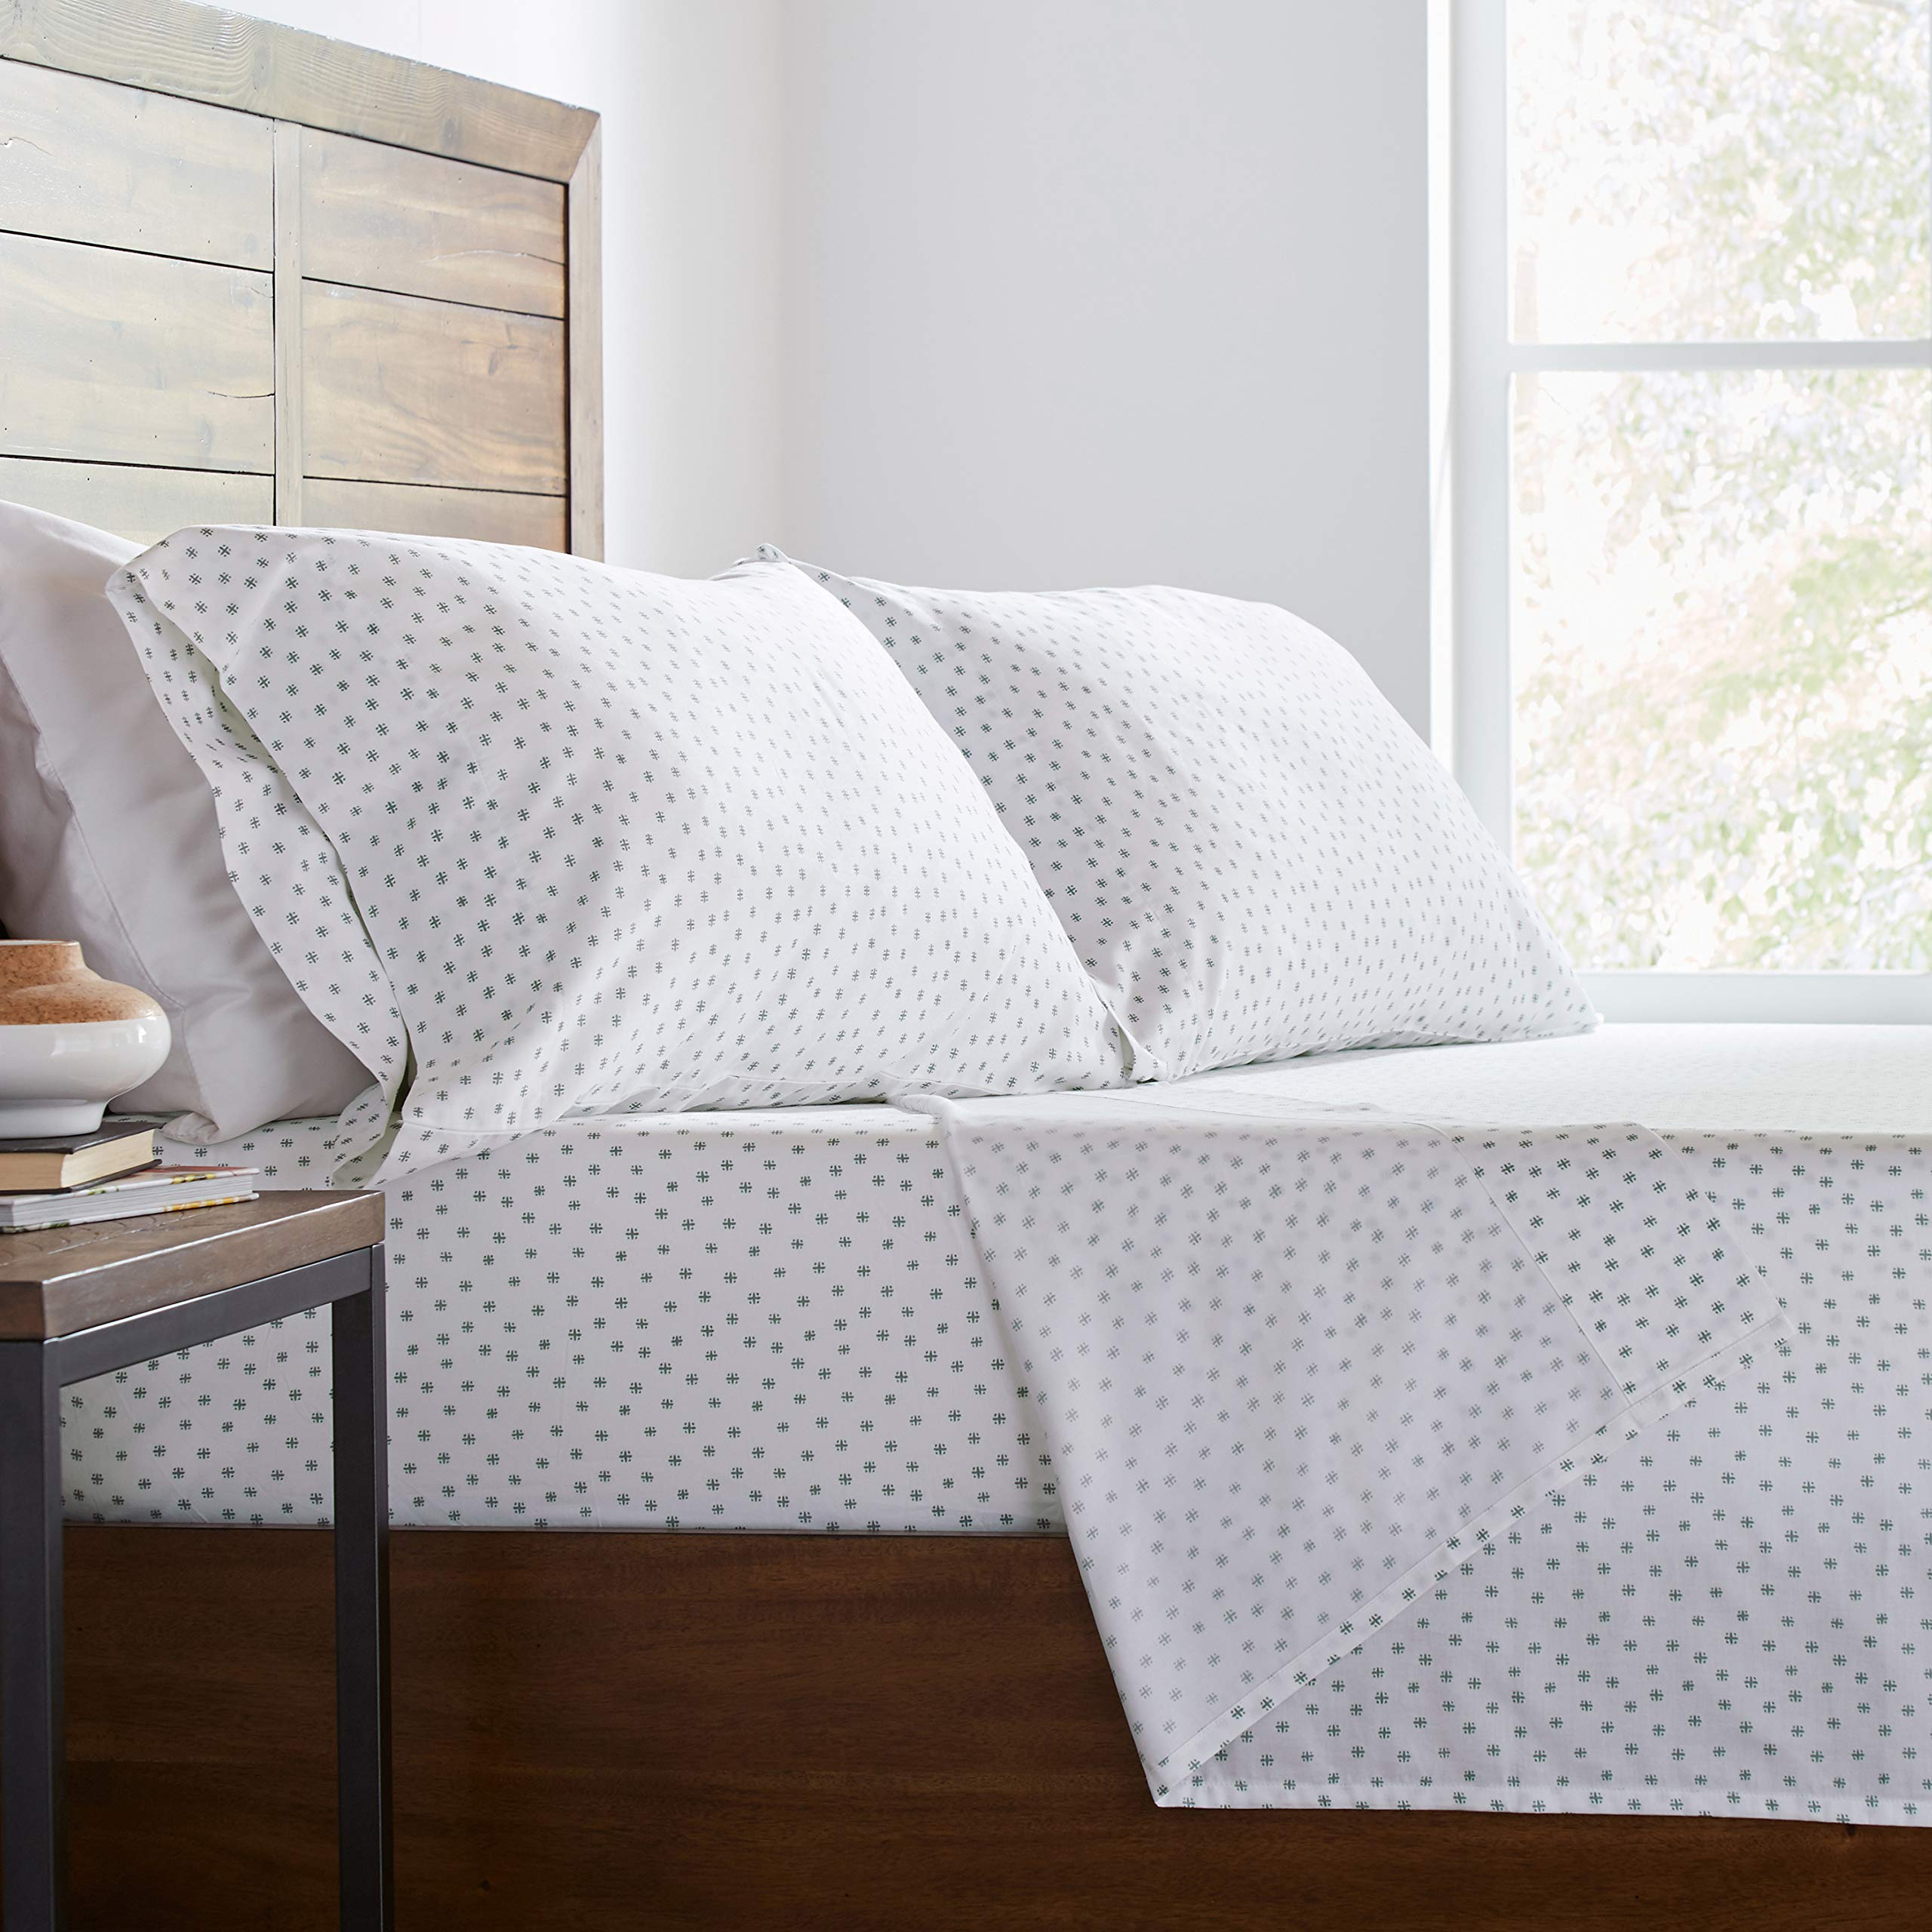 Stone & Beam Starburst 100% Cotton Sateen Sheet Set, Queen, Oasis by Stone & Beam (Image #3)